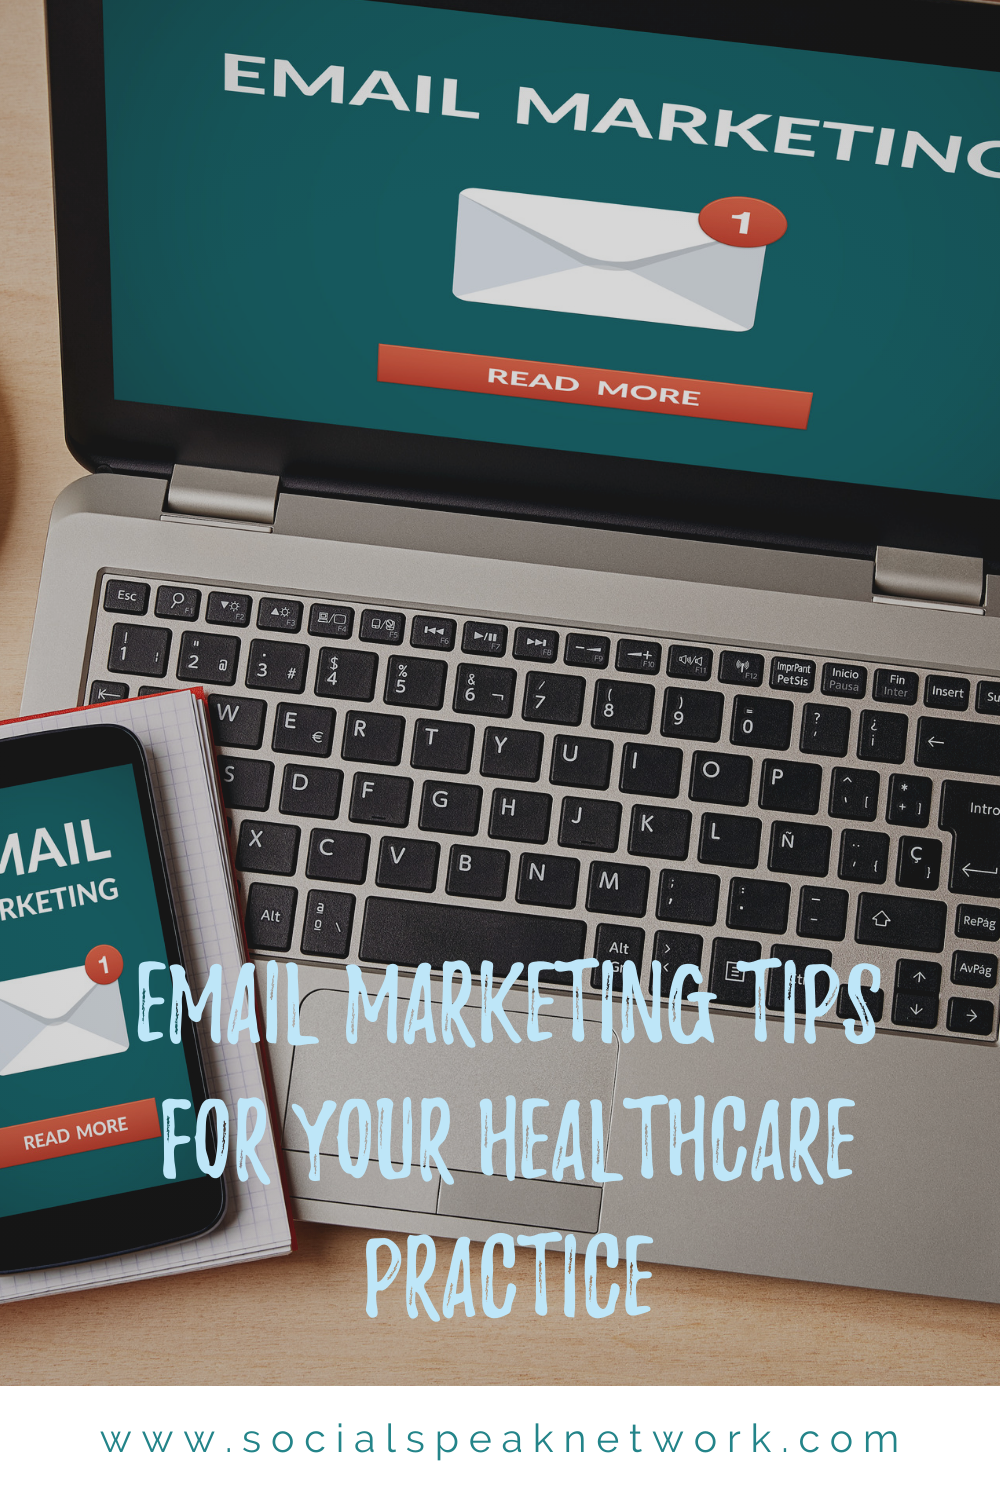 Email Marketing Tips for Your Healthcare Practice